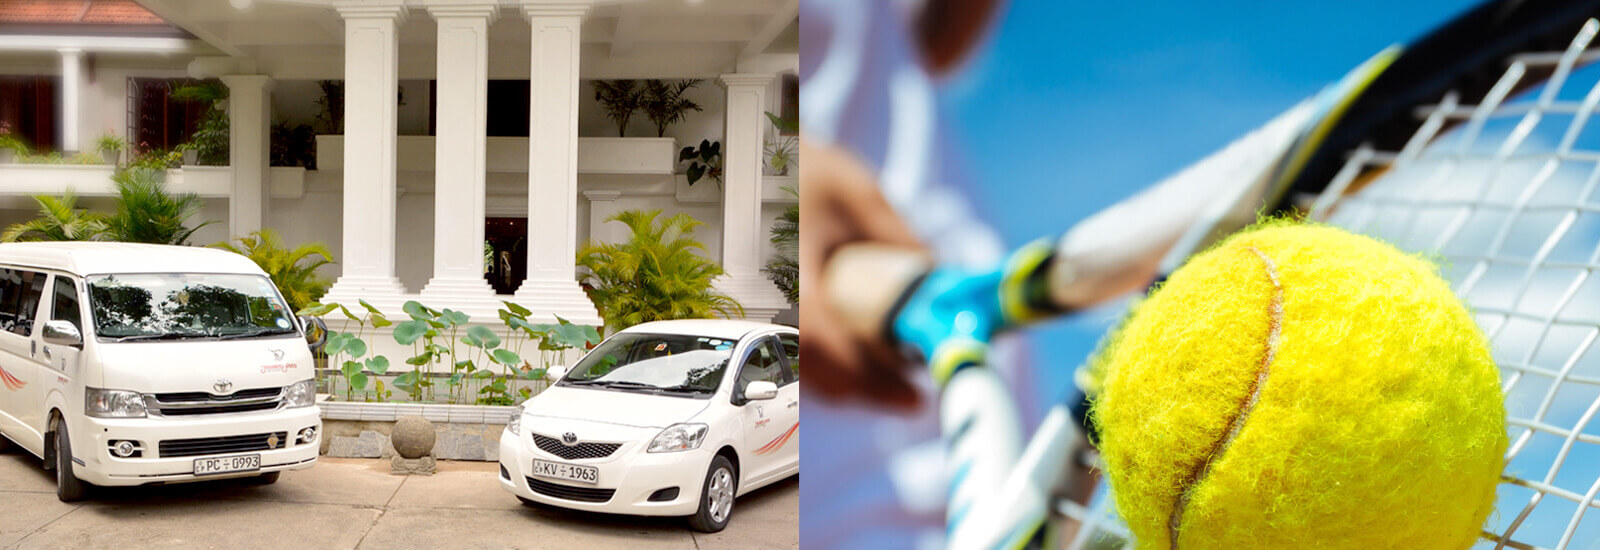 Tennis, Airport Transfer and Other Facilities at Mahaweli Reach Hotel